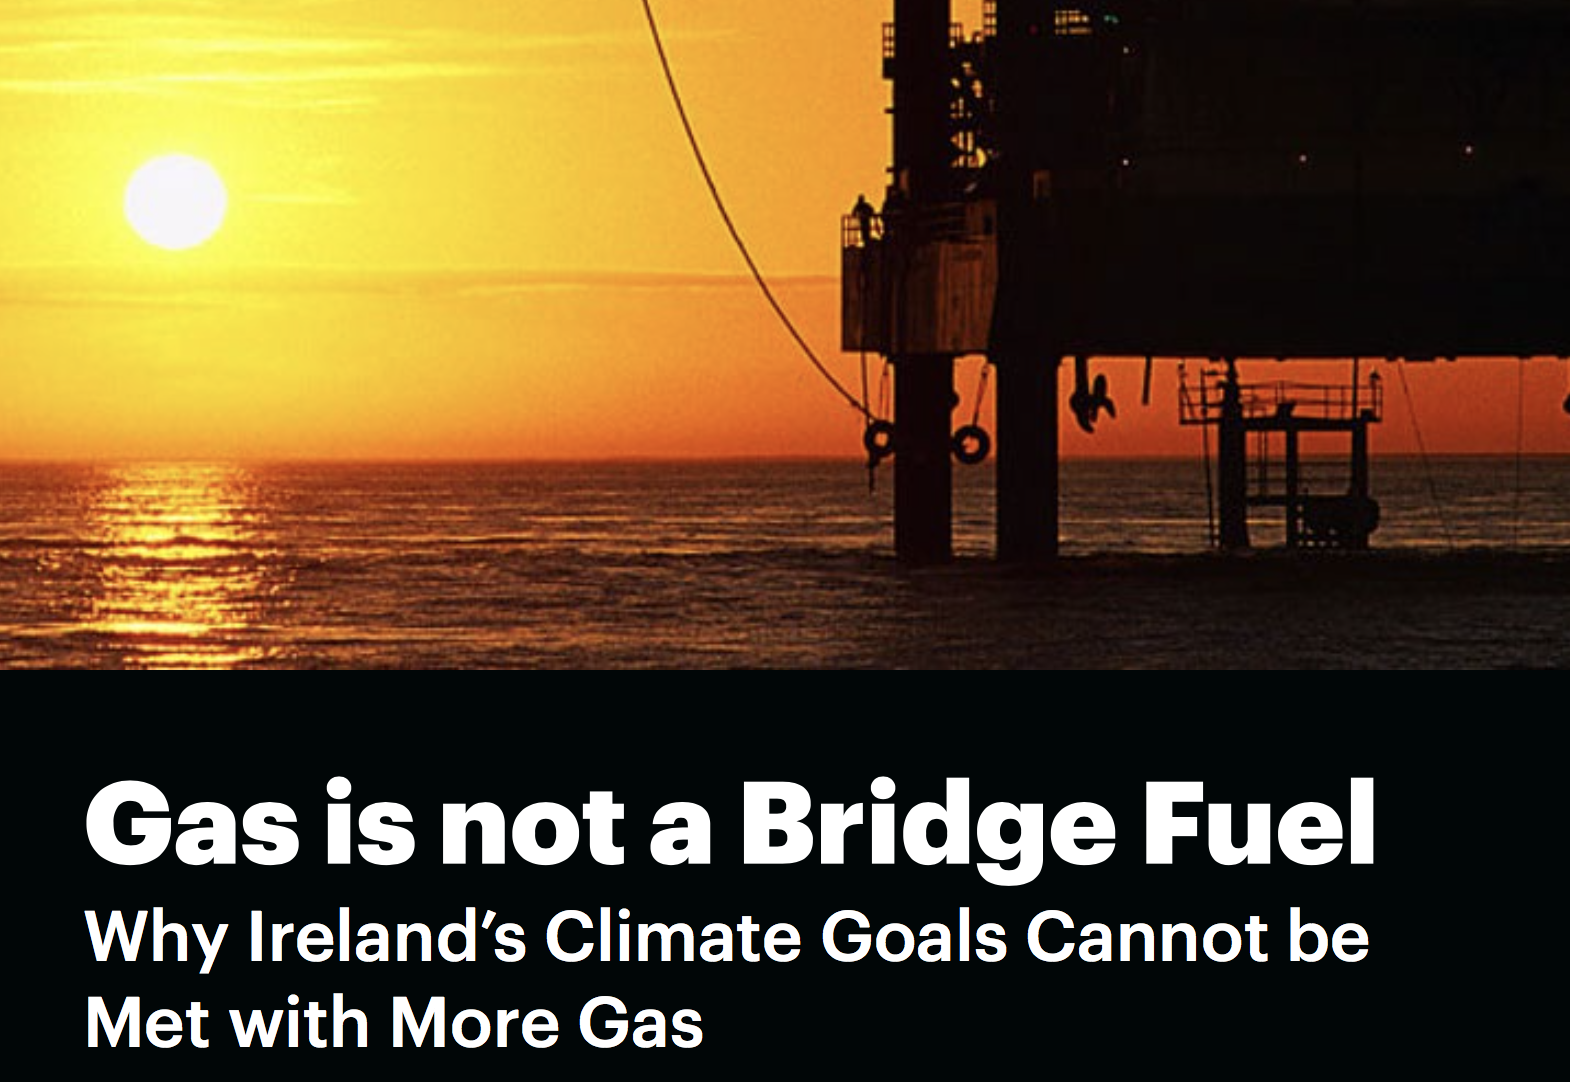 Gas Is Not a Bridge Fuel: Why Ireland's Climate Goals Cannot Be Met with More Gas